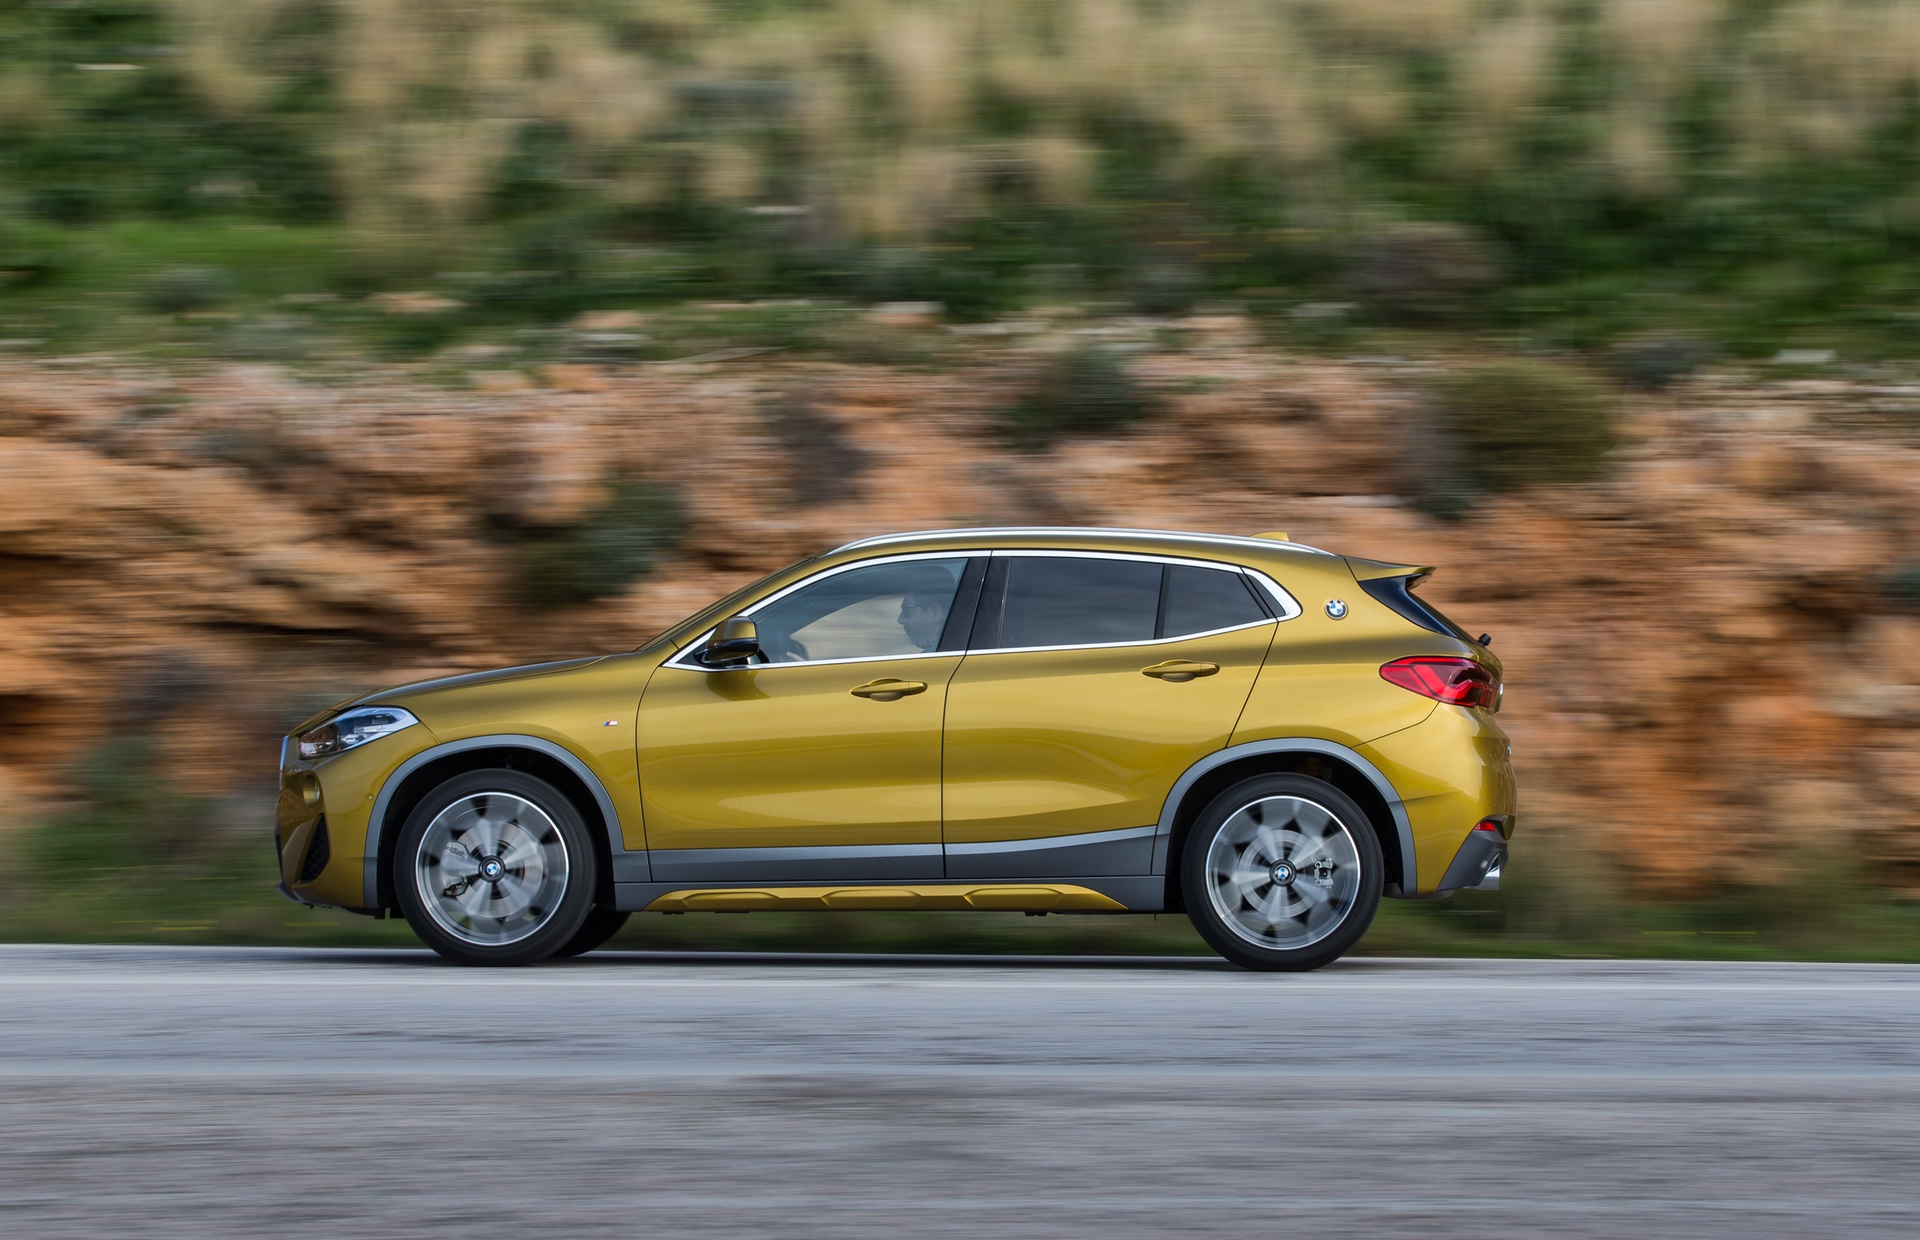 BMW_X2_Greek_presskit_0099